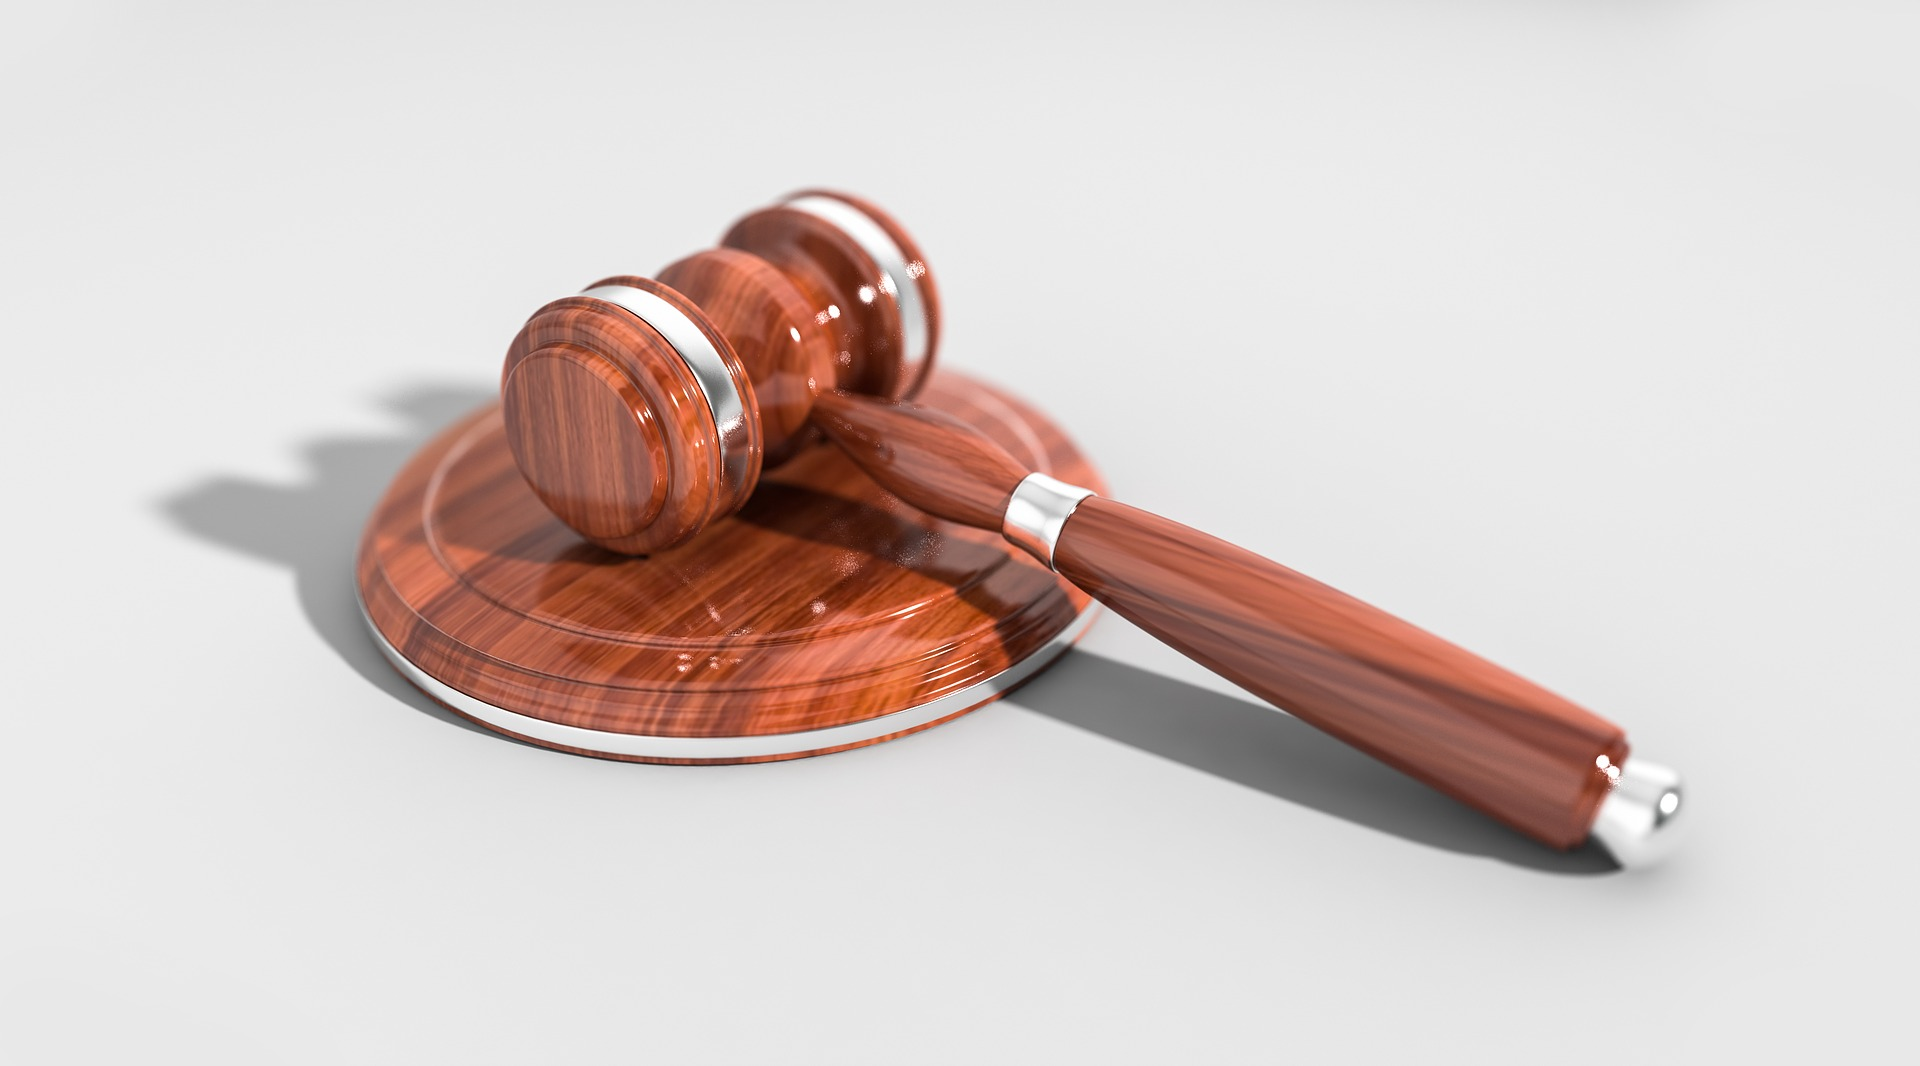 This page is about the terms of service from RdyGo LLC. The picture is of a Gavel seen in a courtroom.